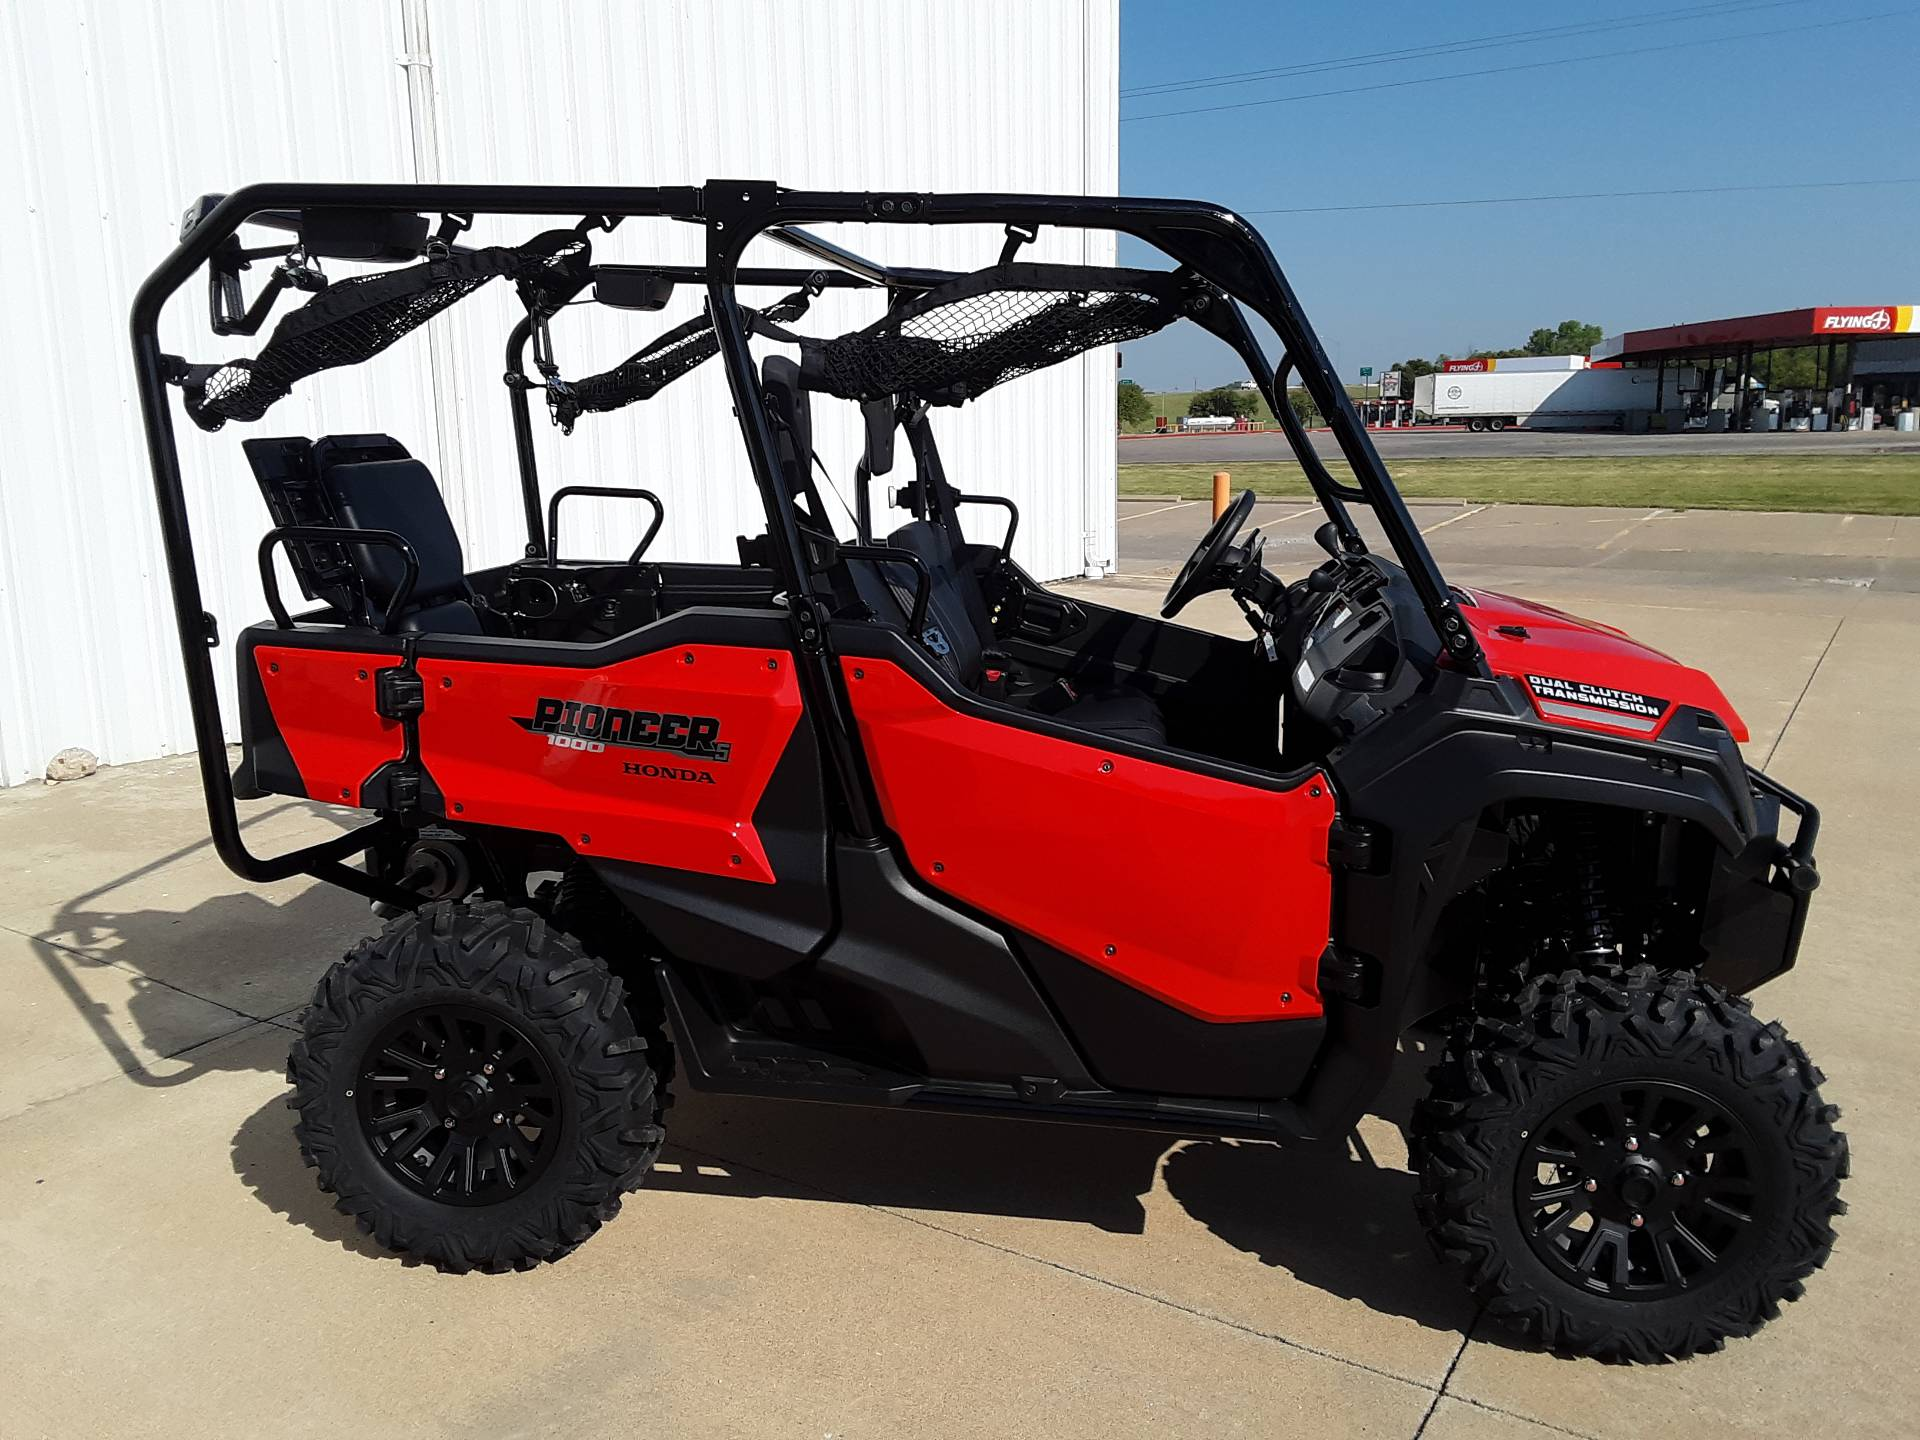 2021 Honda PIONEER 1000 - 5 DELUXE in Salina, Kansas - Photo 1